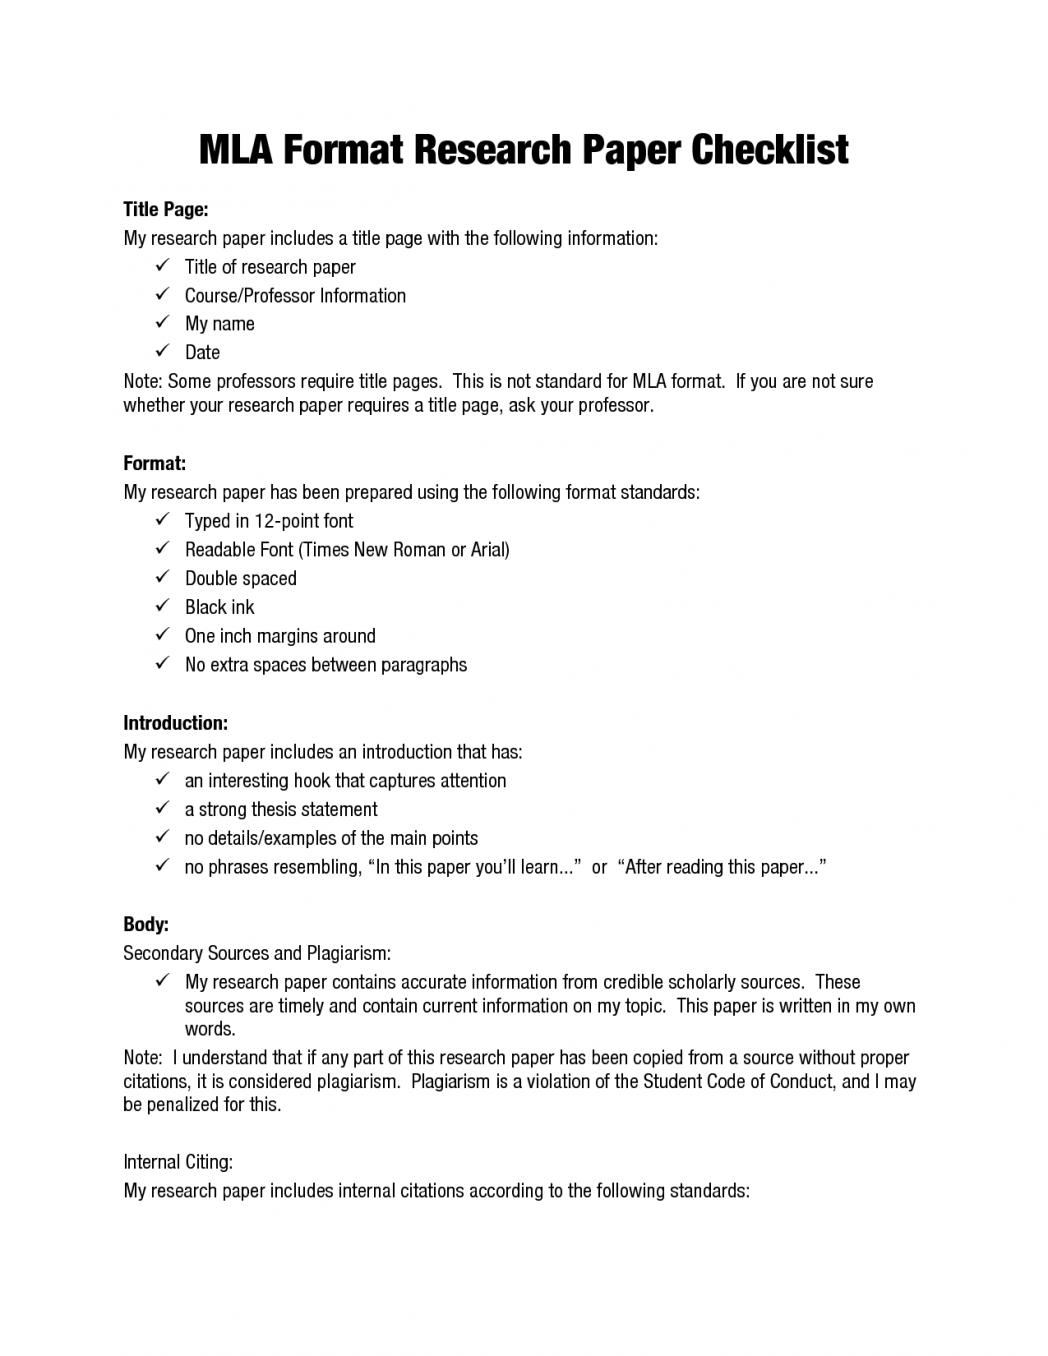 009 Proper Essay Form Best Images Aboutchool Tips Learningpanish Ib Examples Extended Example Language Paper Ap Gcse Yourself Aqa 1048x1356 In Unusual Spanish About School Full